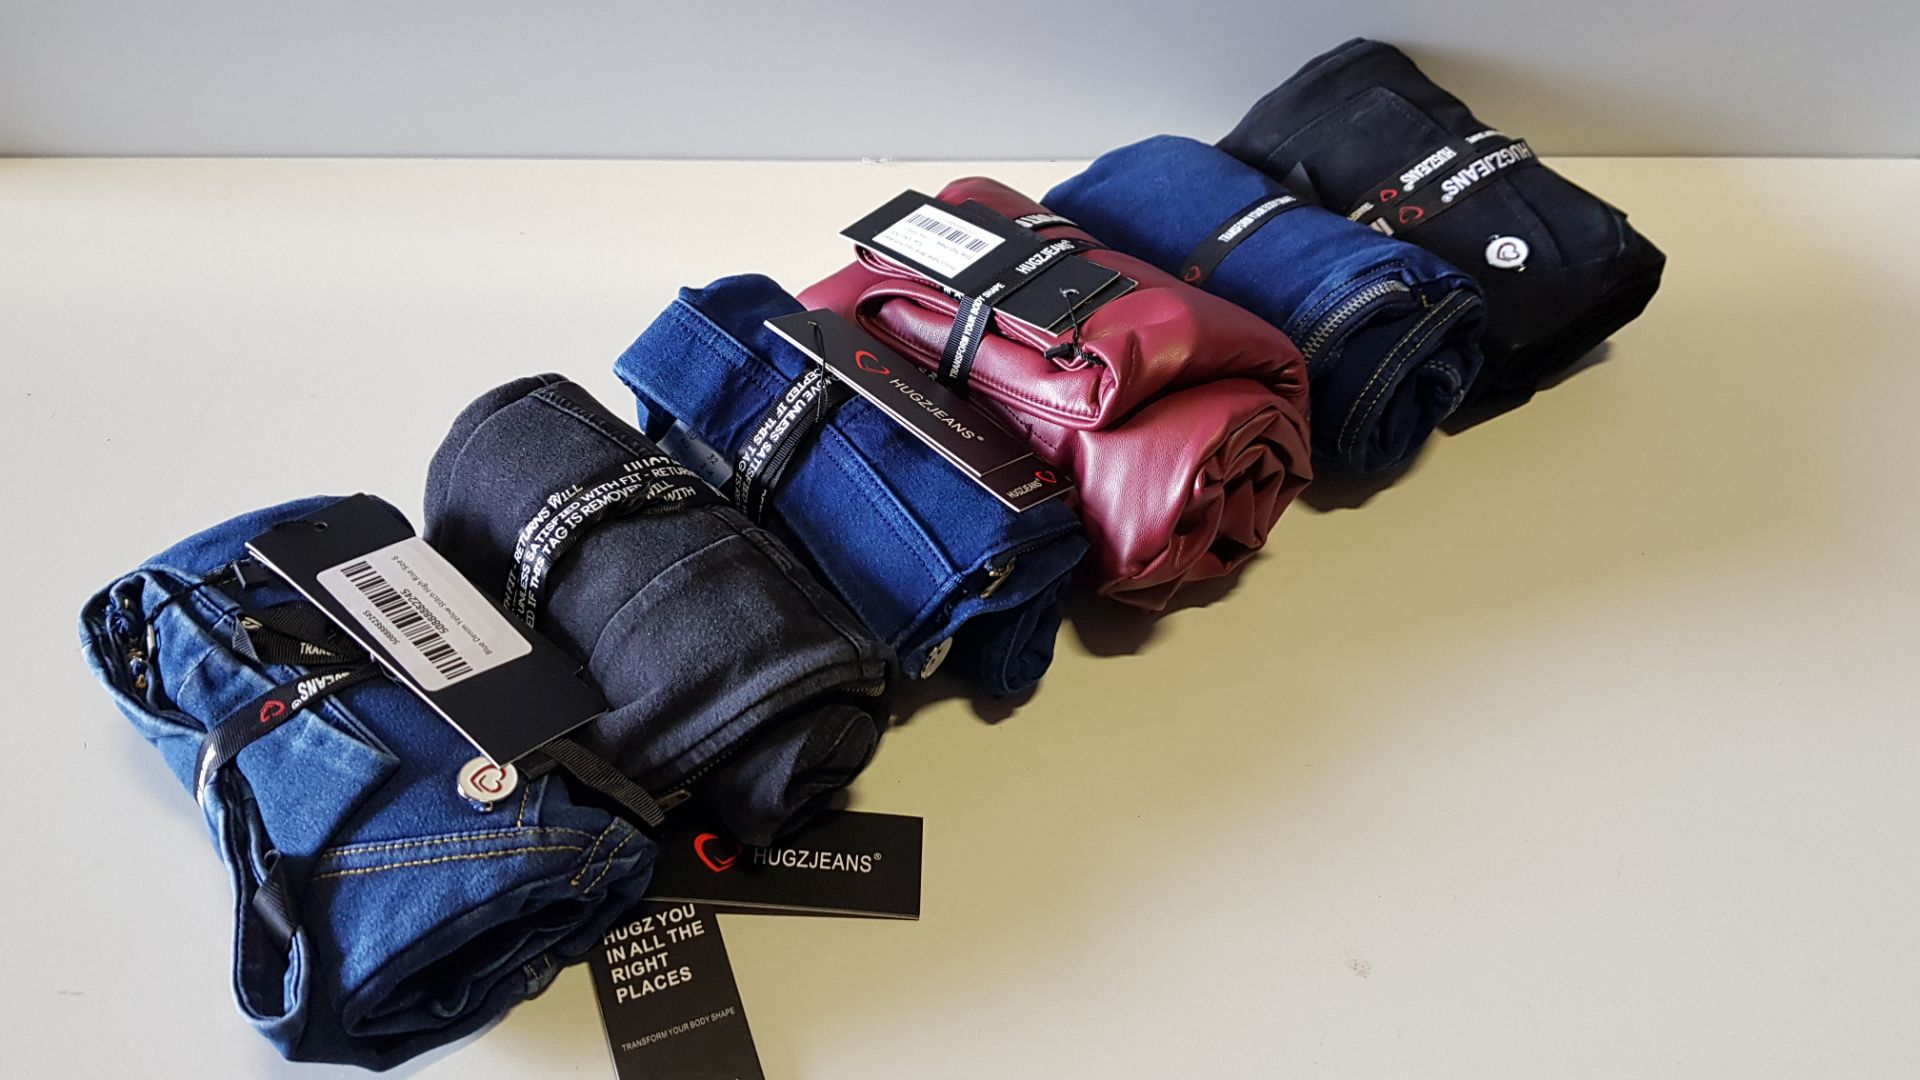 12 X BRAND NEW HUGZ JEANS DESIGNER BRANDED - ALL SIZE 6 - XS - IE. JEANS / FAUX LEATHERS /